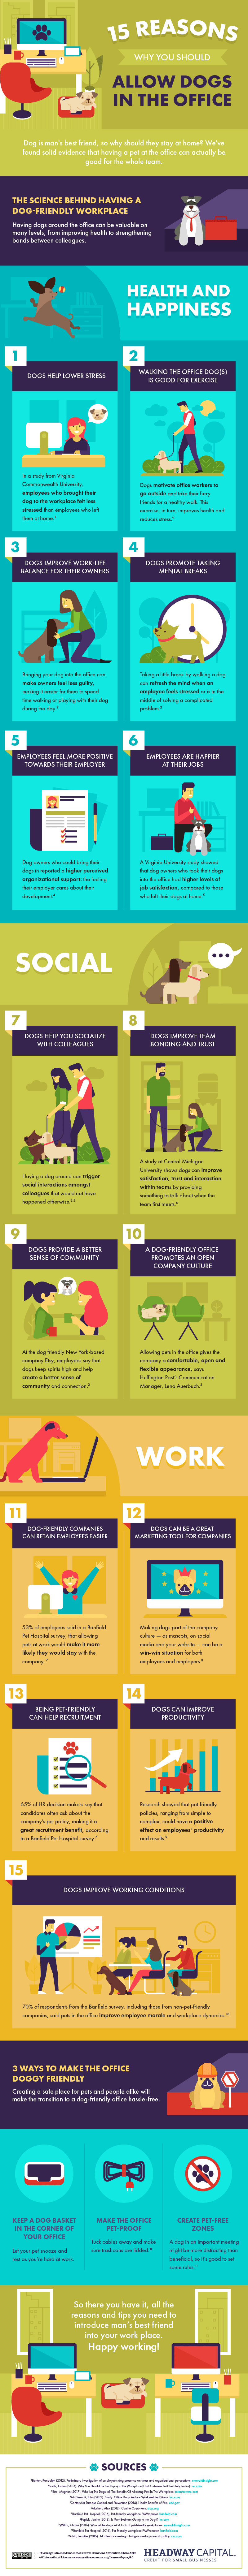 15 Reasons Why You Should Allow Dogs in the Office